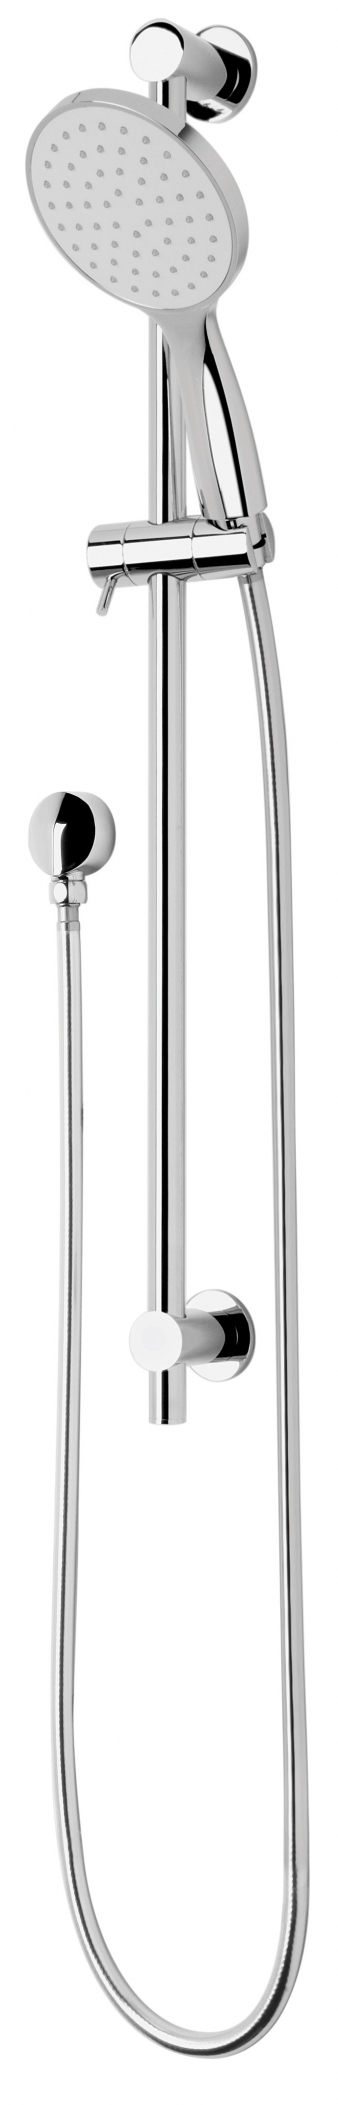 Solitaire Slide Shower SLT040 (two way installation, option 1). Image: 8